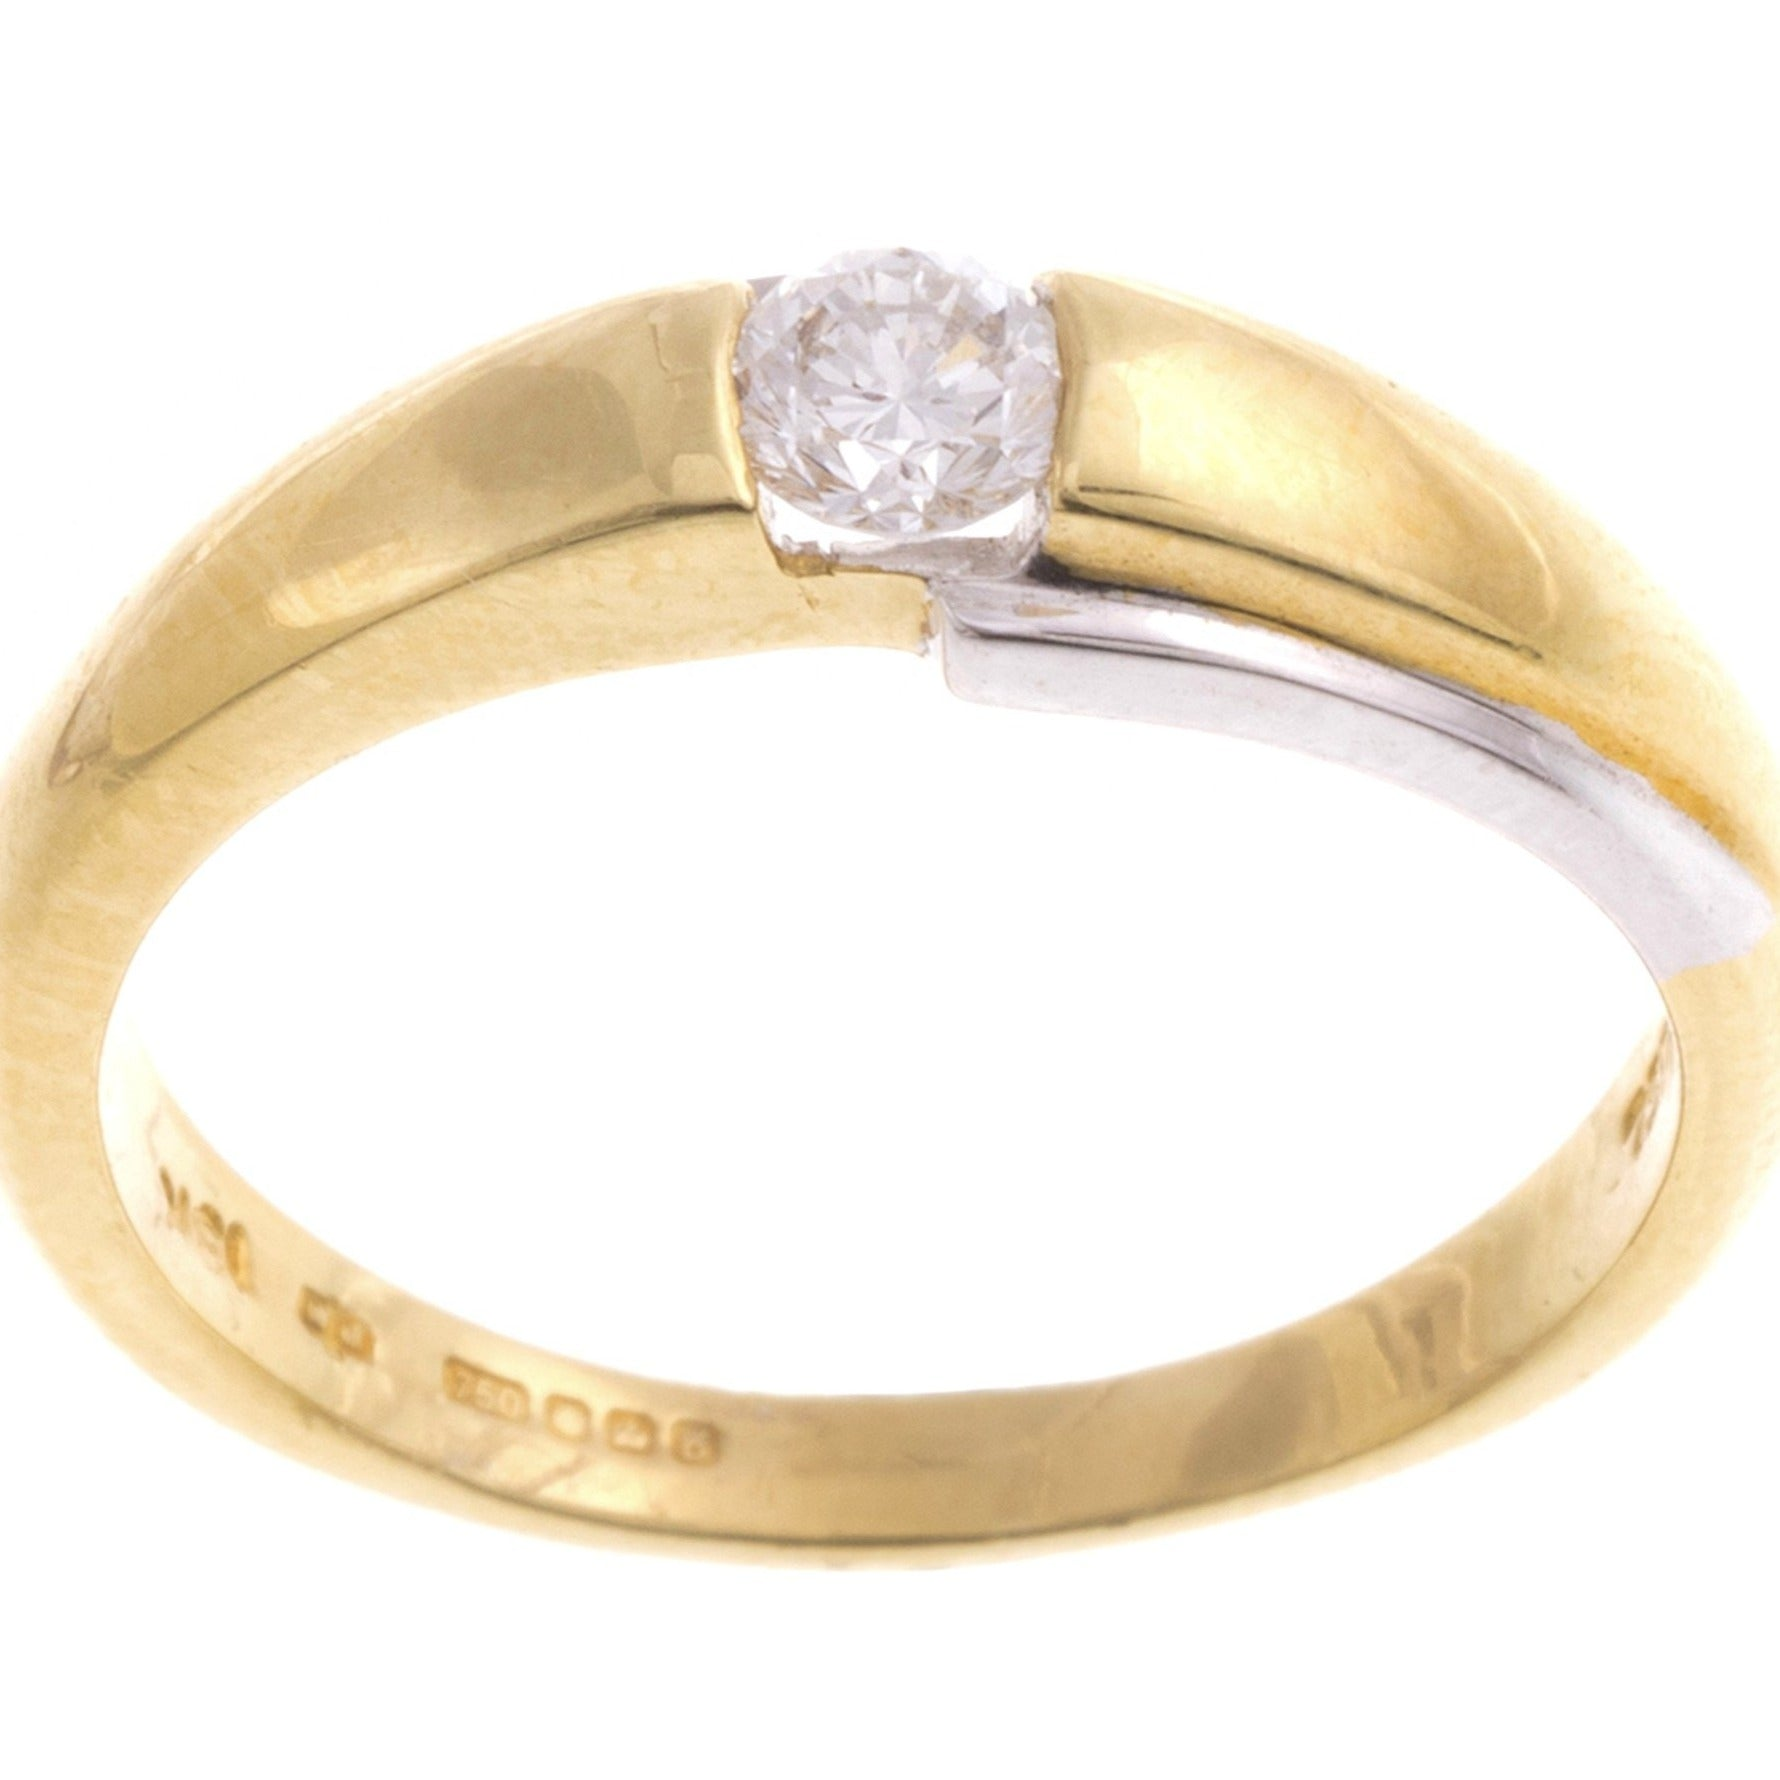 18ct Two Tone Gold Diamond Ring (YPR4565)